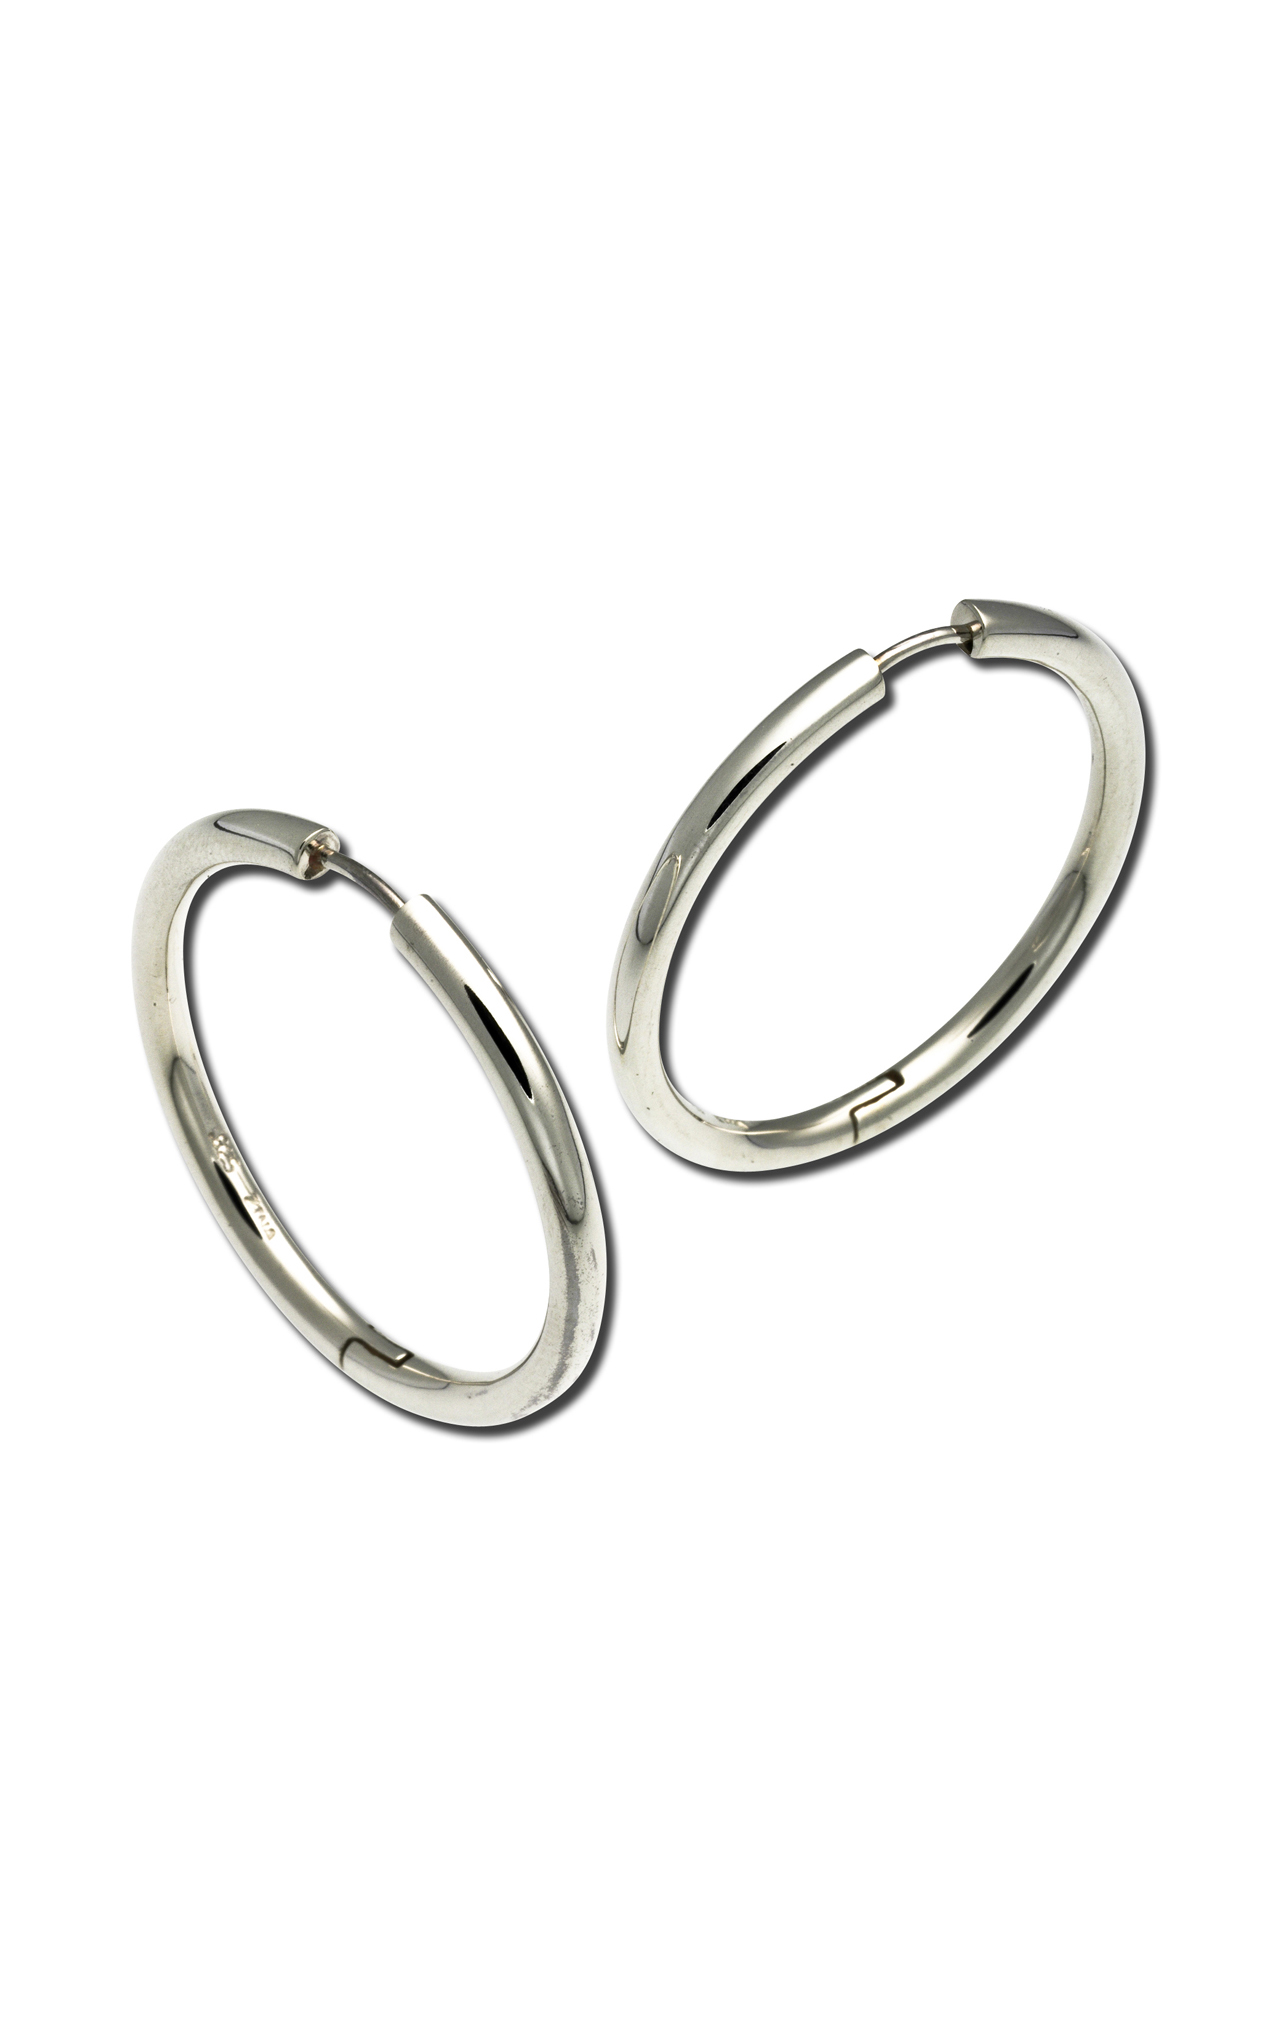 Zina Contemporary Earrings B7 product image